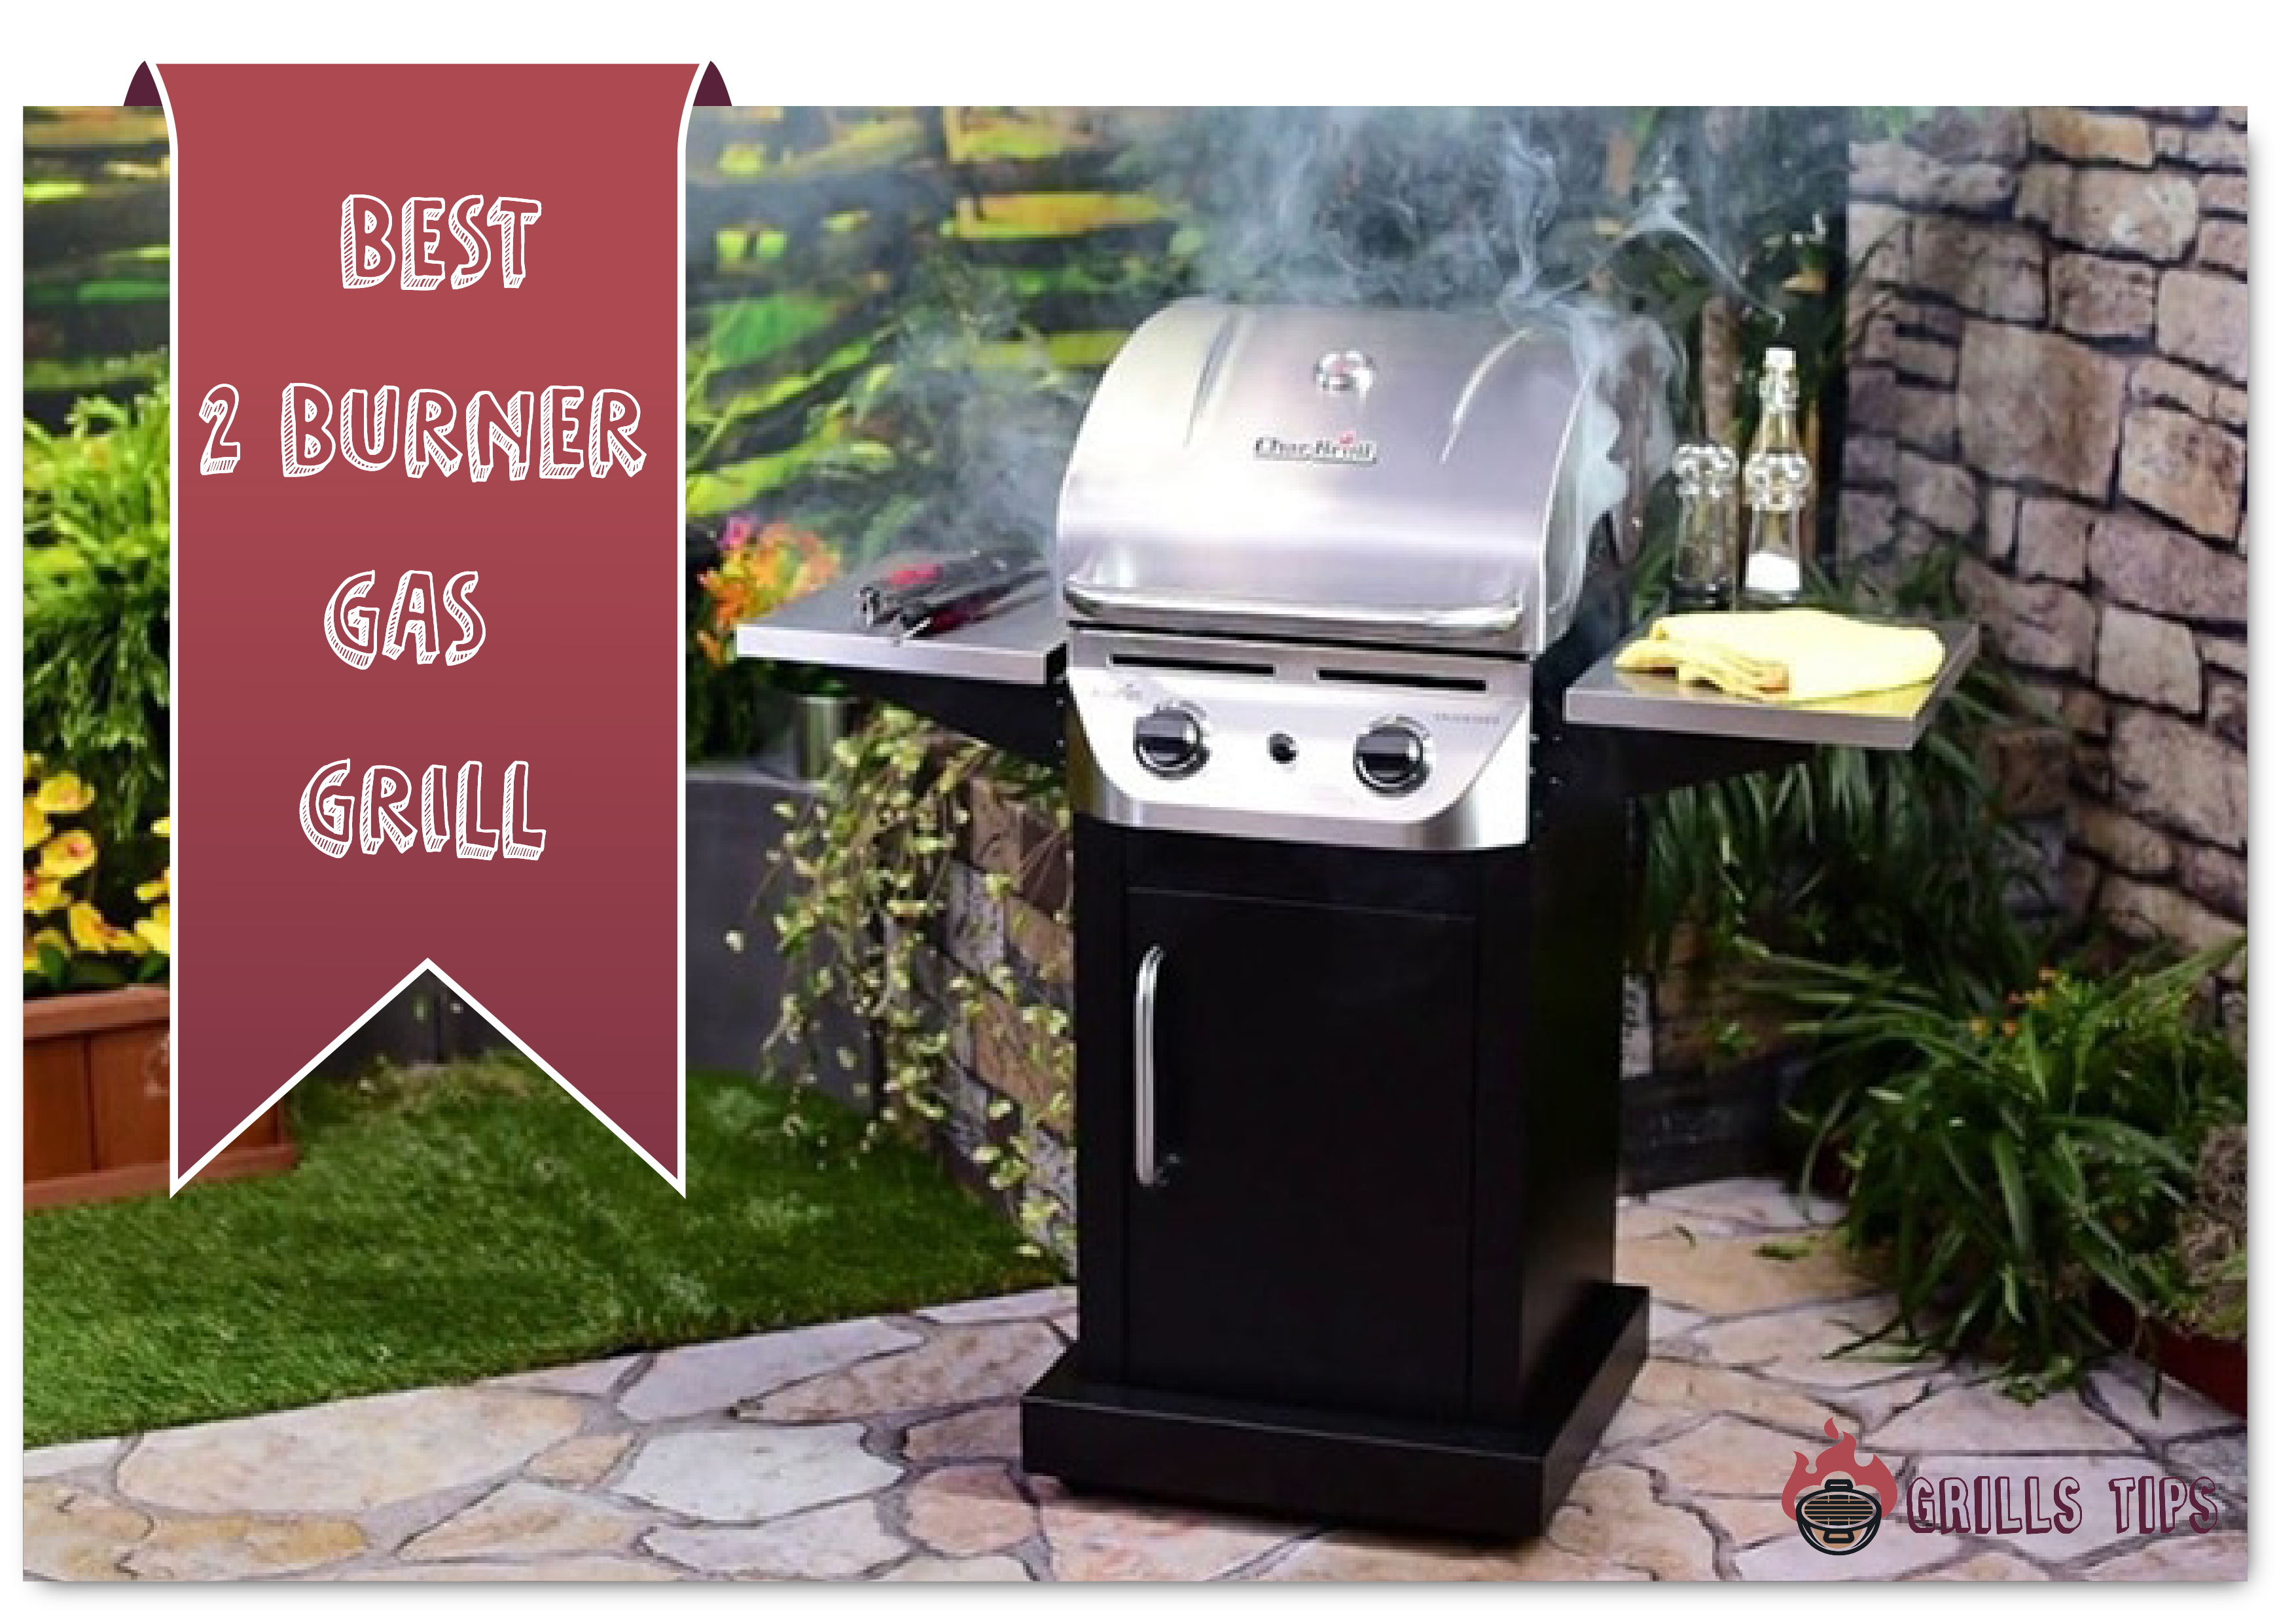 BEST TWO BURNER GAS GRILL